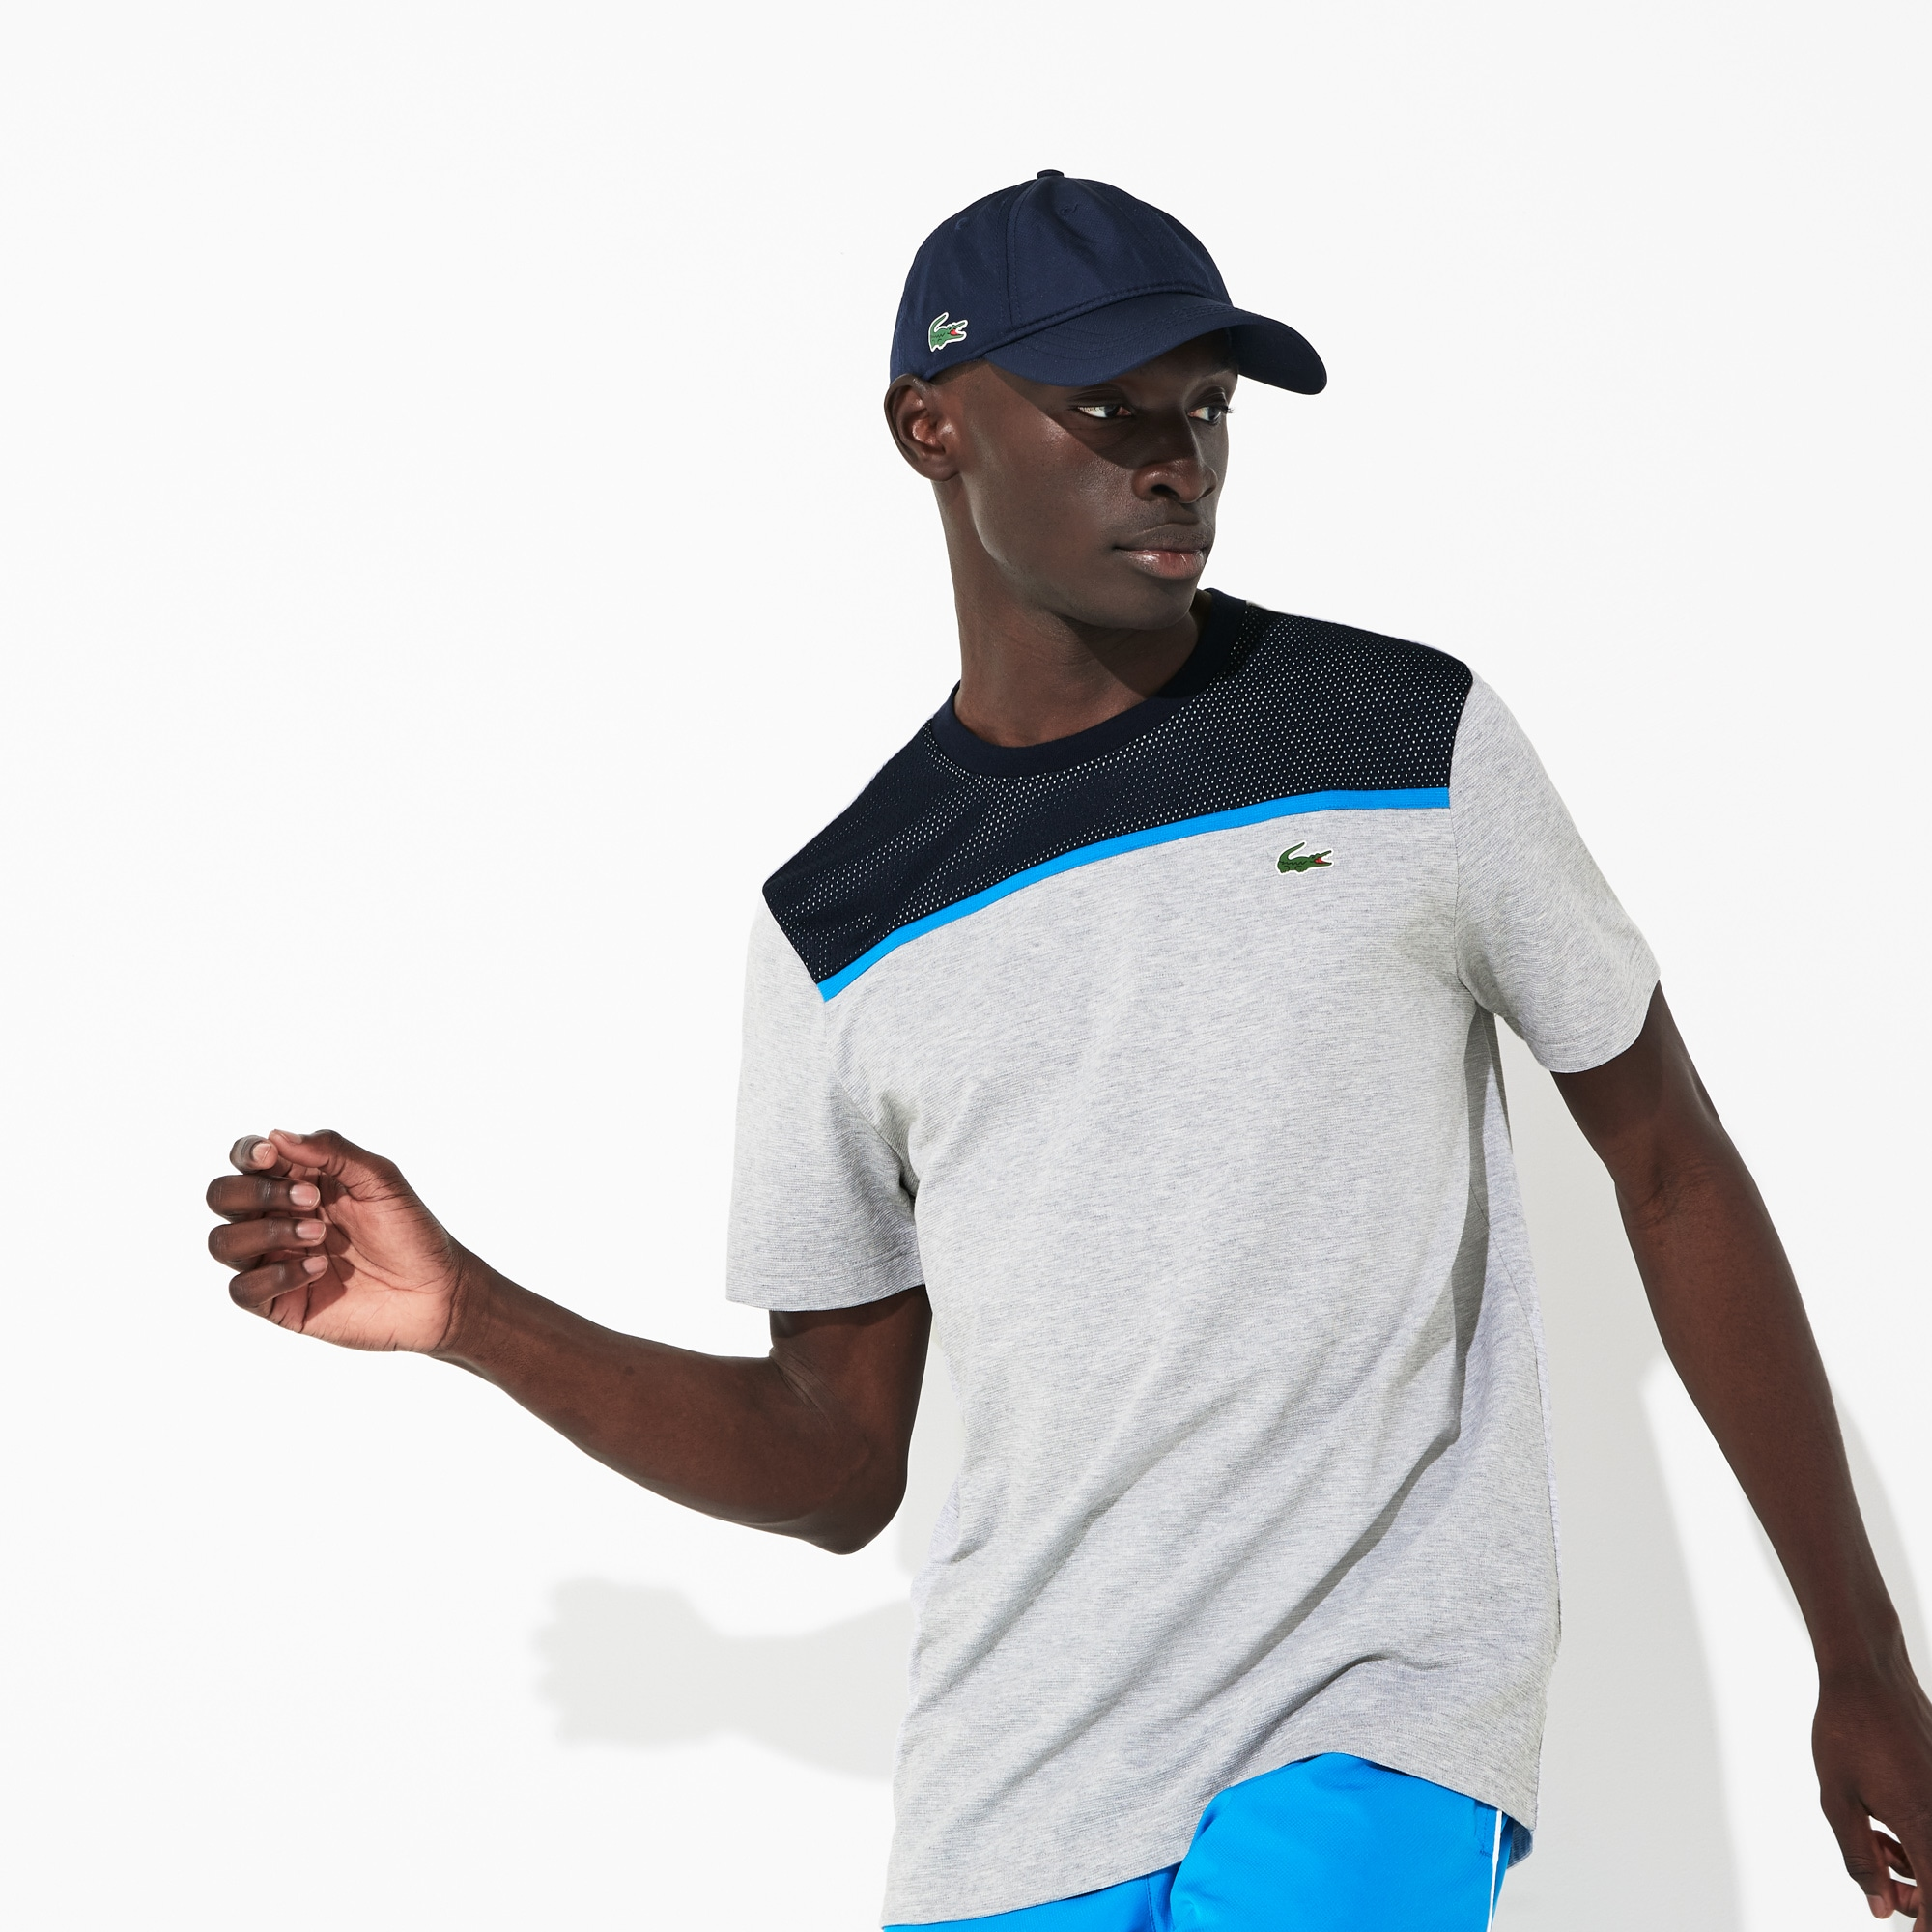 Men's Lacoste SPORT Crew Neck Ultra Light Cotton Tennis T-shirt